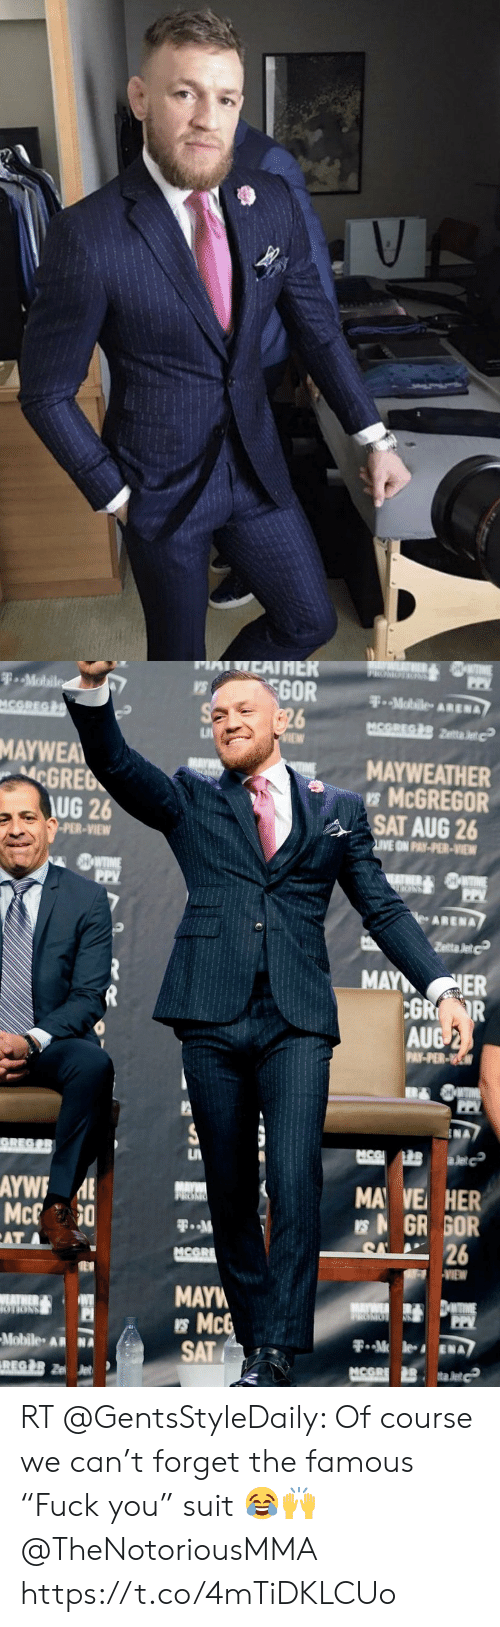 """Mayweather, Memes, and Live: ON NS  PP  GOR  26  P..Mobile  F..Mobile ARENA  MCOREG  MCGREG &R etta Jet  MAYWEA  GREB  AUG 26  MAYWEATHER  95MCGREGOR  SAT AUG 26  PER-VIEW  LIVE ON PAY-PER-VIEW  SHOWTIME  PP  EATHER SHWTIME  REONS  le ARENA  Zetta Jet  MAY  HER  CGR R  AUG 2  PAY-PER-YW  GREGOR  NCG  alet  AYW E  Mc 0  MA  9GR GOR  26  VE HER  FOMR  AT  MCORE  VIEW  MAYW  McG  SAT  HMTIME  MAWEA  WEATHER  OTIONS  F..Mle  Mobile  MCGRE  REGOR Z RT @GentsStyleDaily: Of course we can't forget the famous """"Fuck you"""" suit 😂🙌 @TheNotoriousMMA https://t.co/4mTiDKLCUo"""